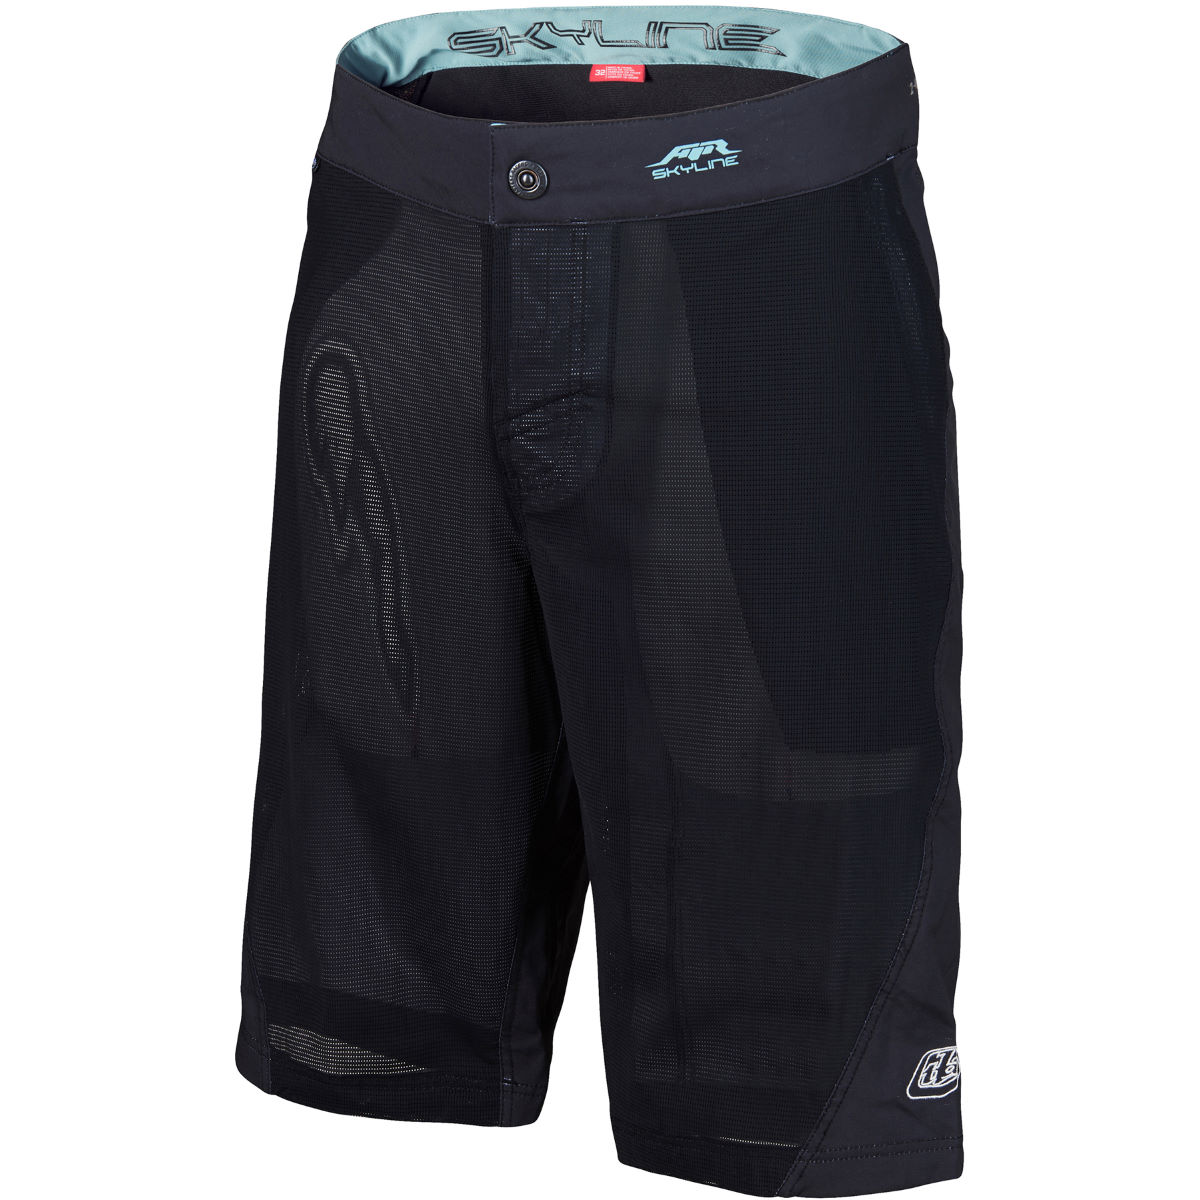 Short Troy Lee Designs Skyline Air - 30 Noir Shorts VTT